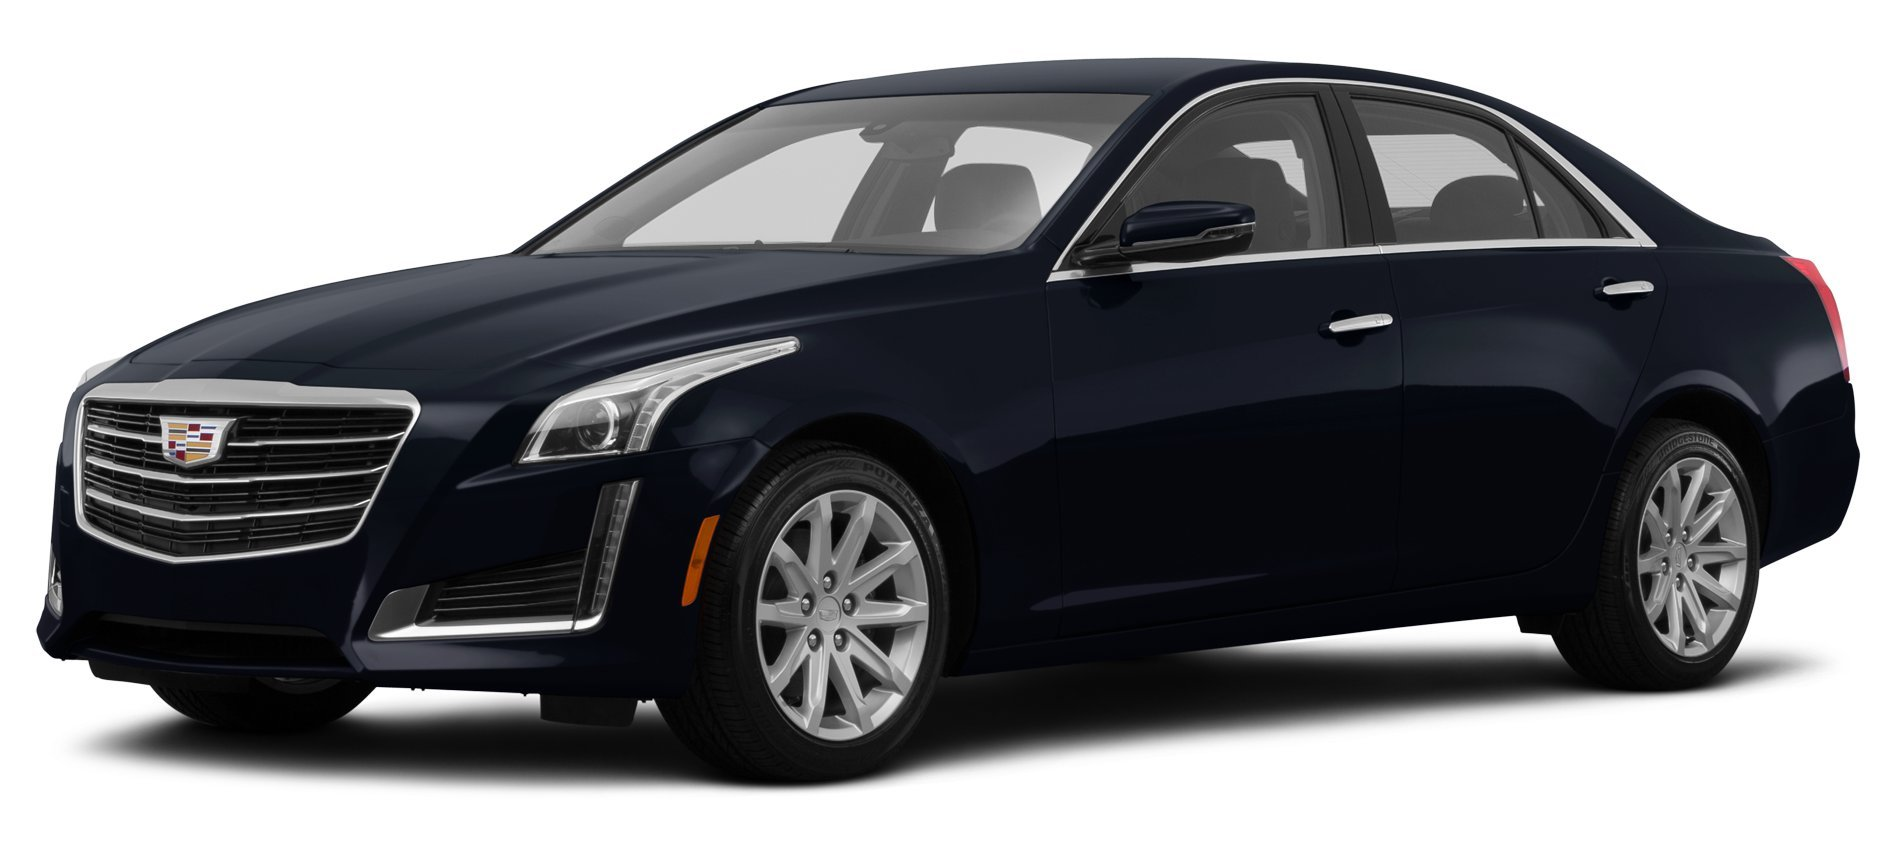 ... 2015 Cadillac CTS All Wheel Drive, 4-Door Sedan ...